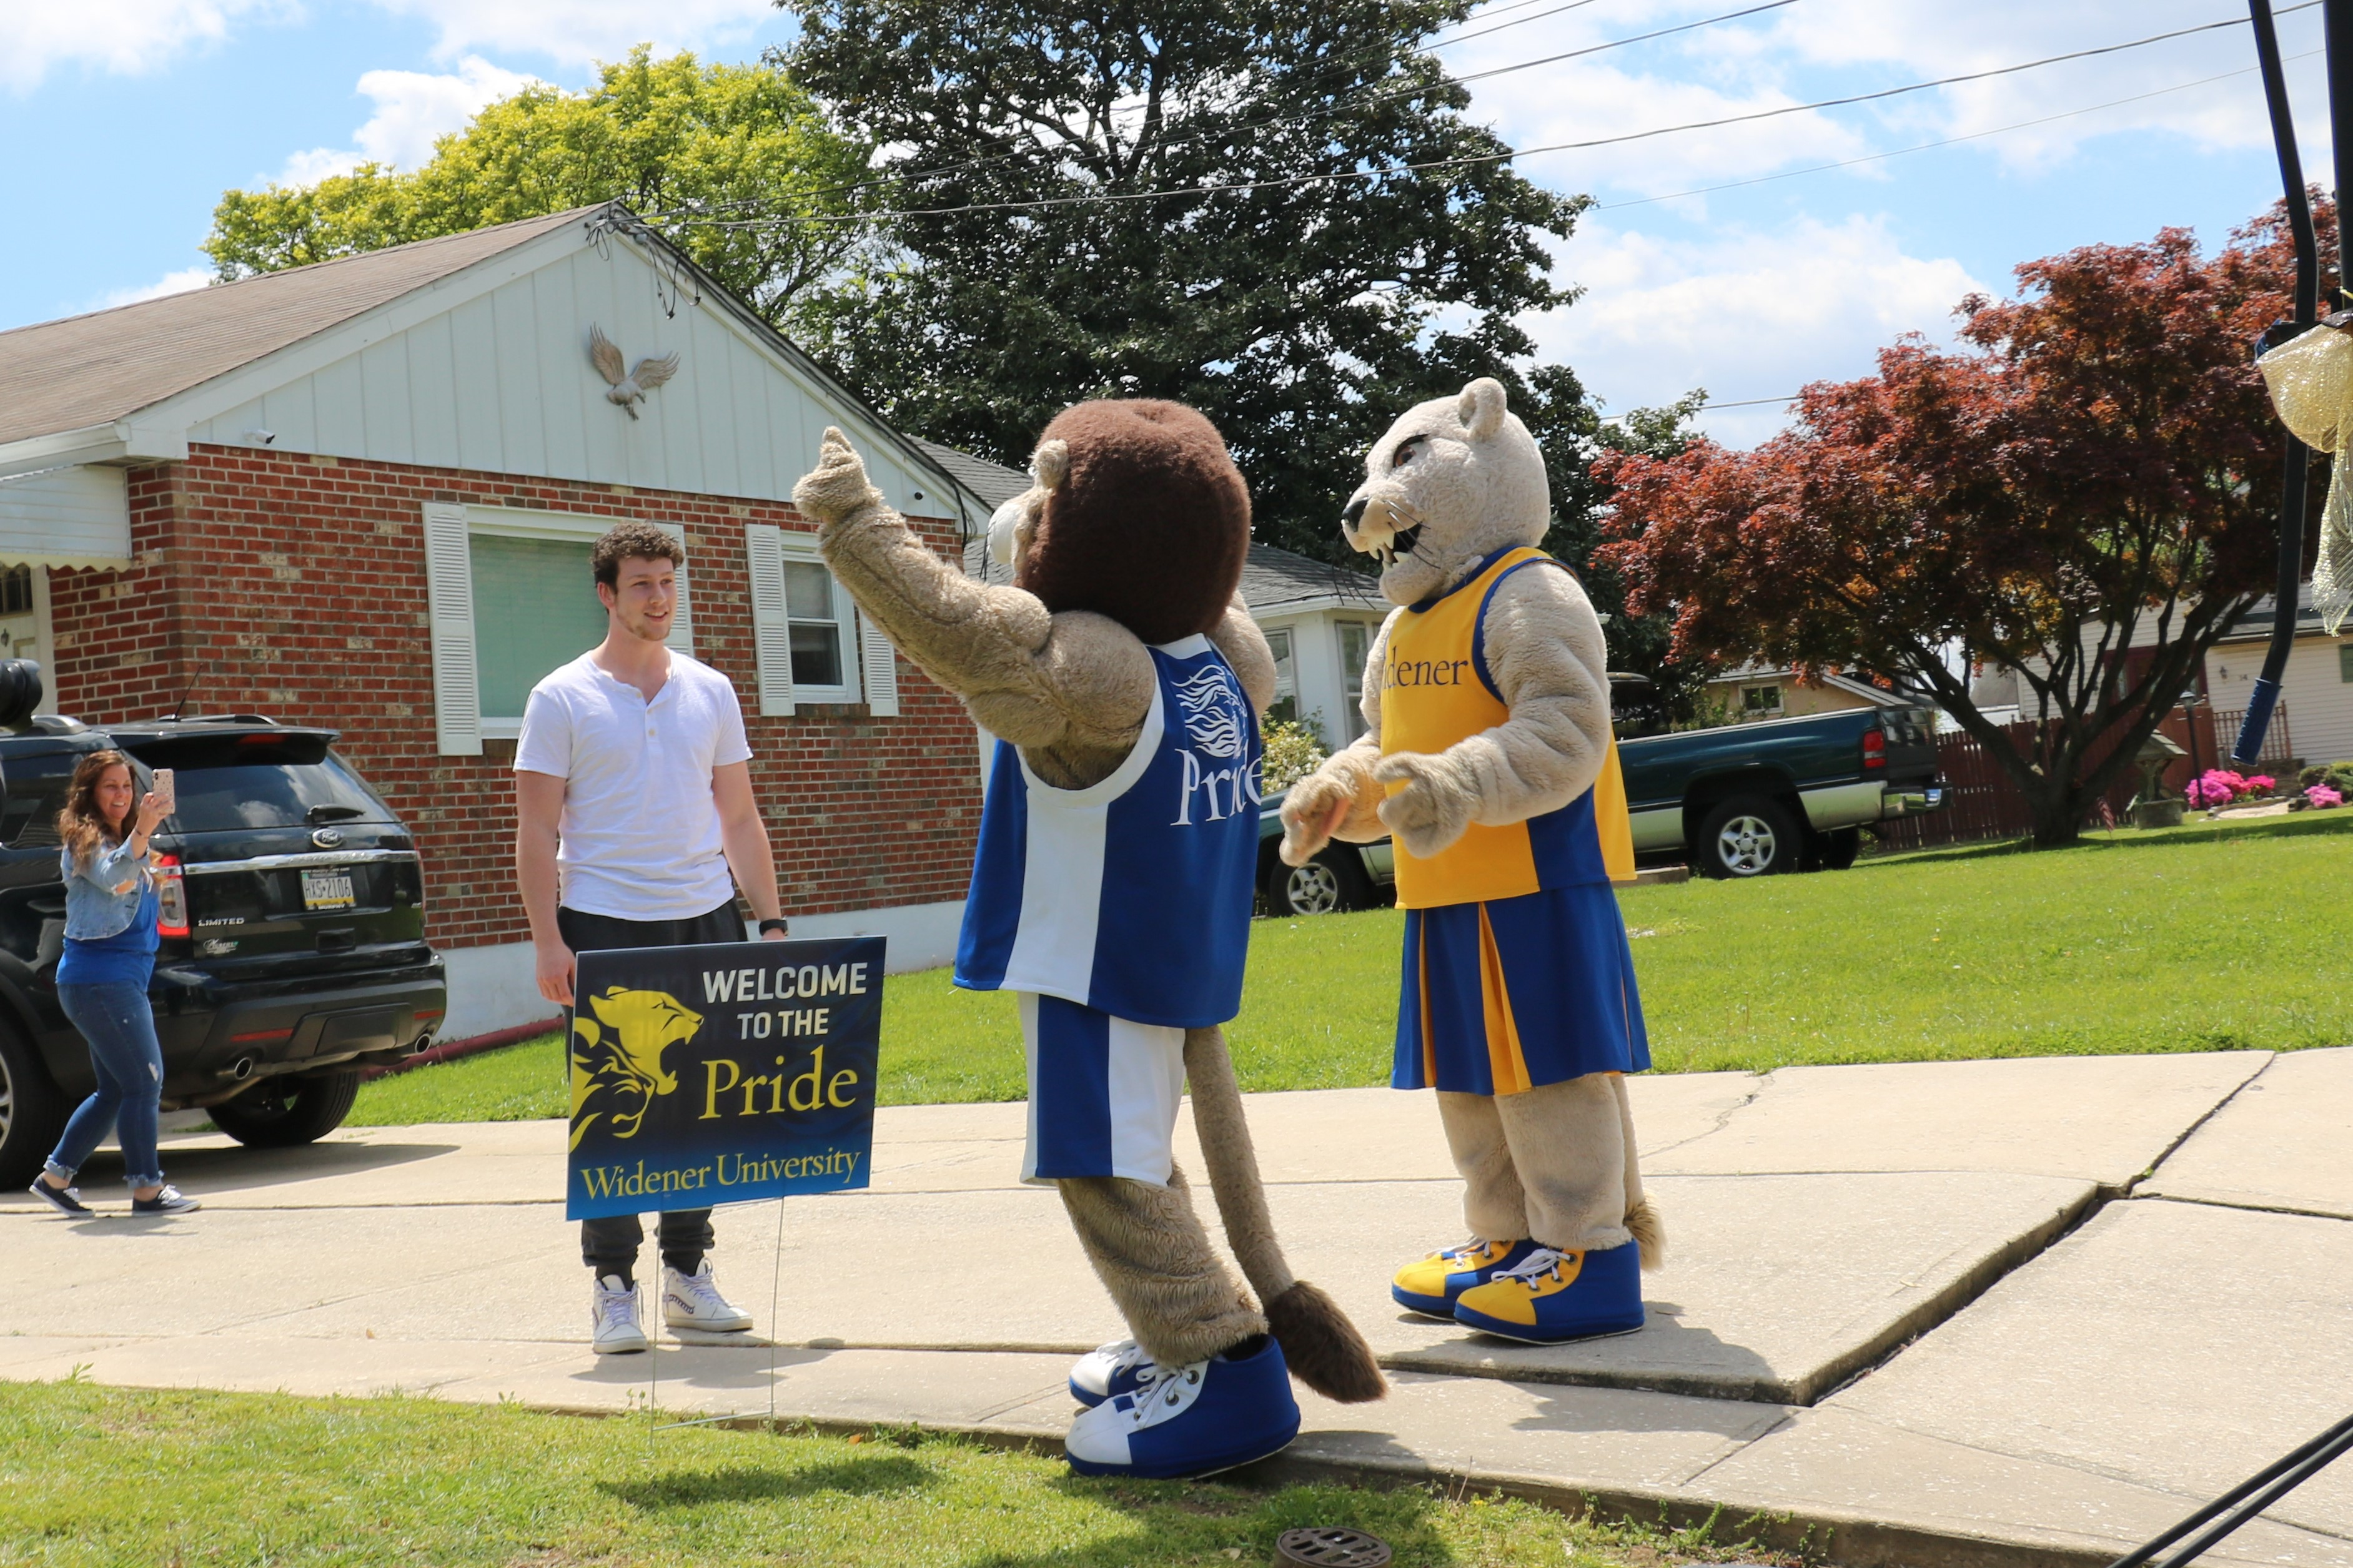 Mascots visiting acccepted students' home is just a part of Widener University's enrollment strategy for fall 2020.